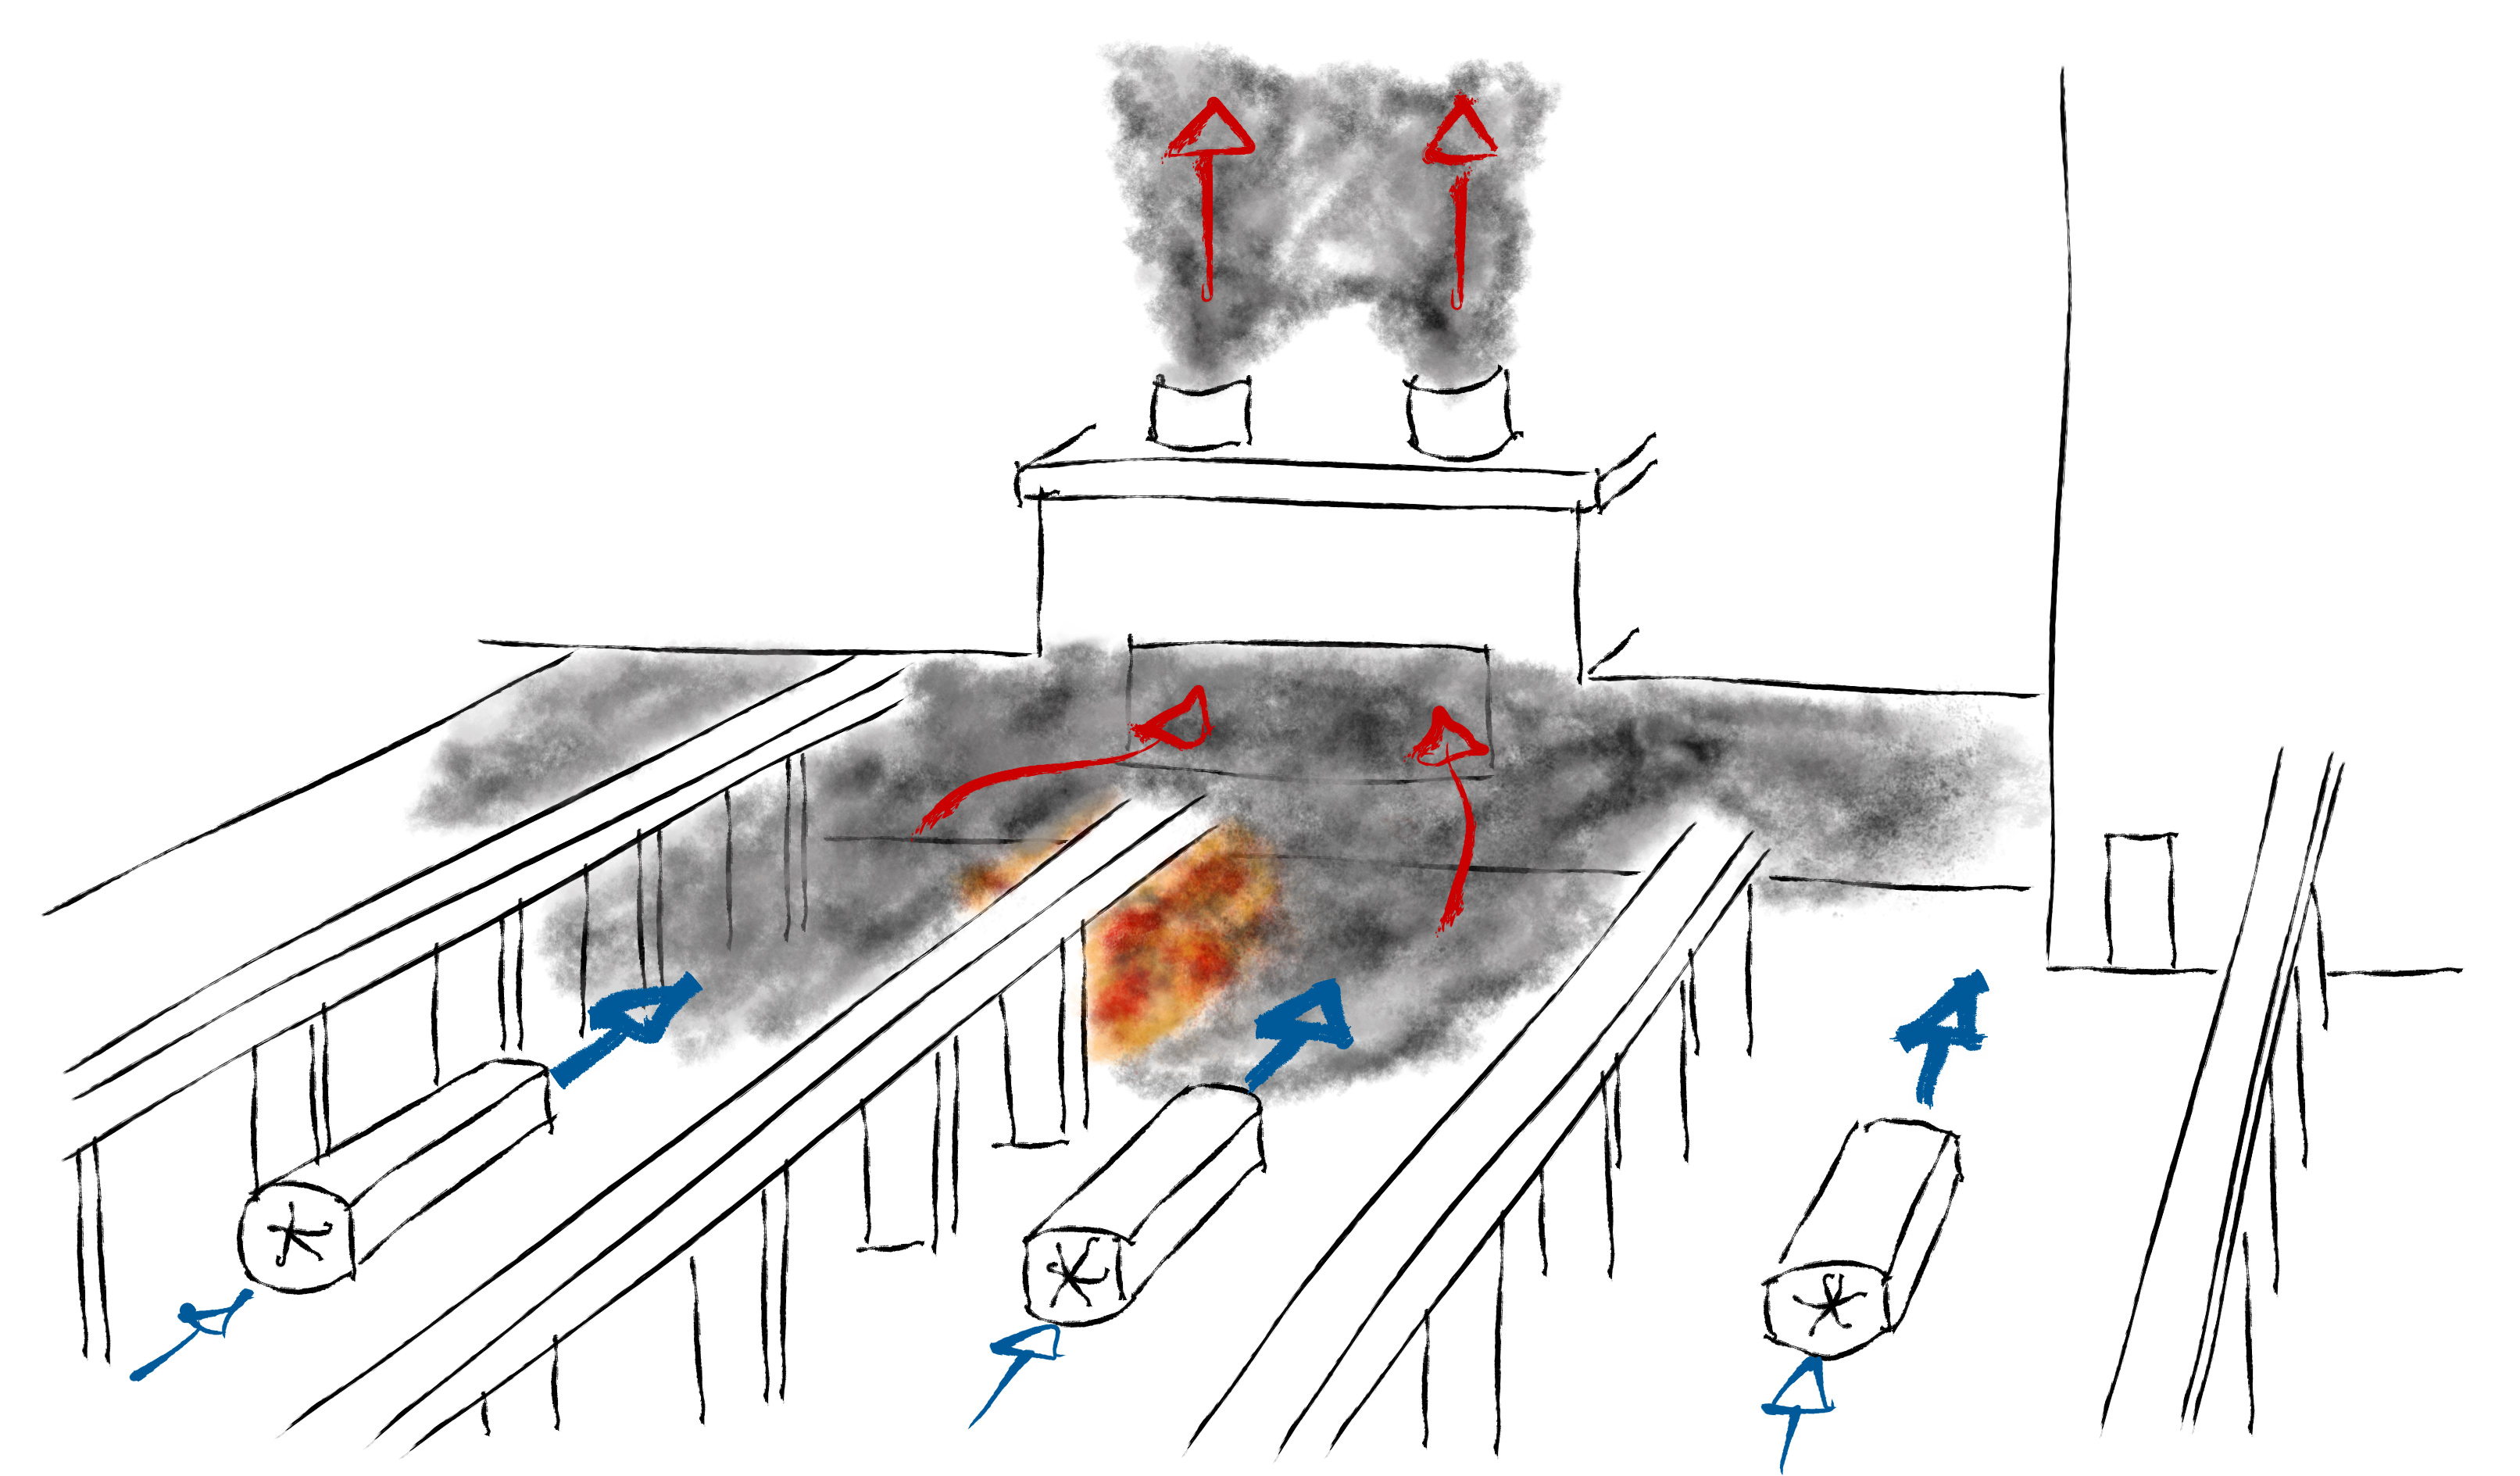 Fire and Smoke Simulation - BuildWind